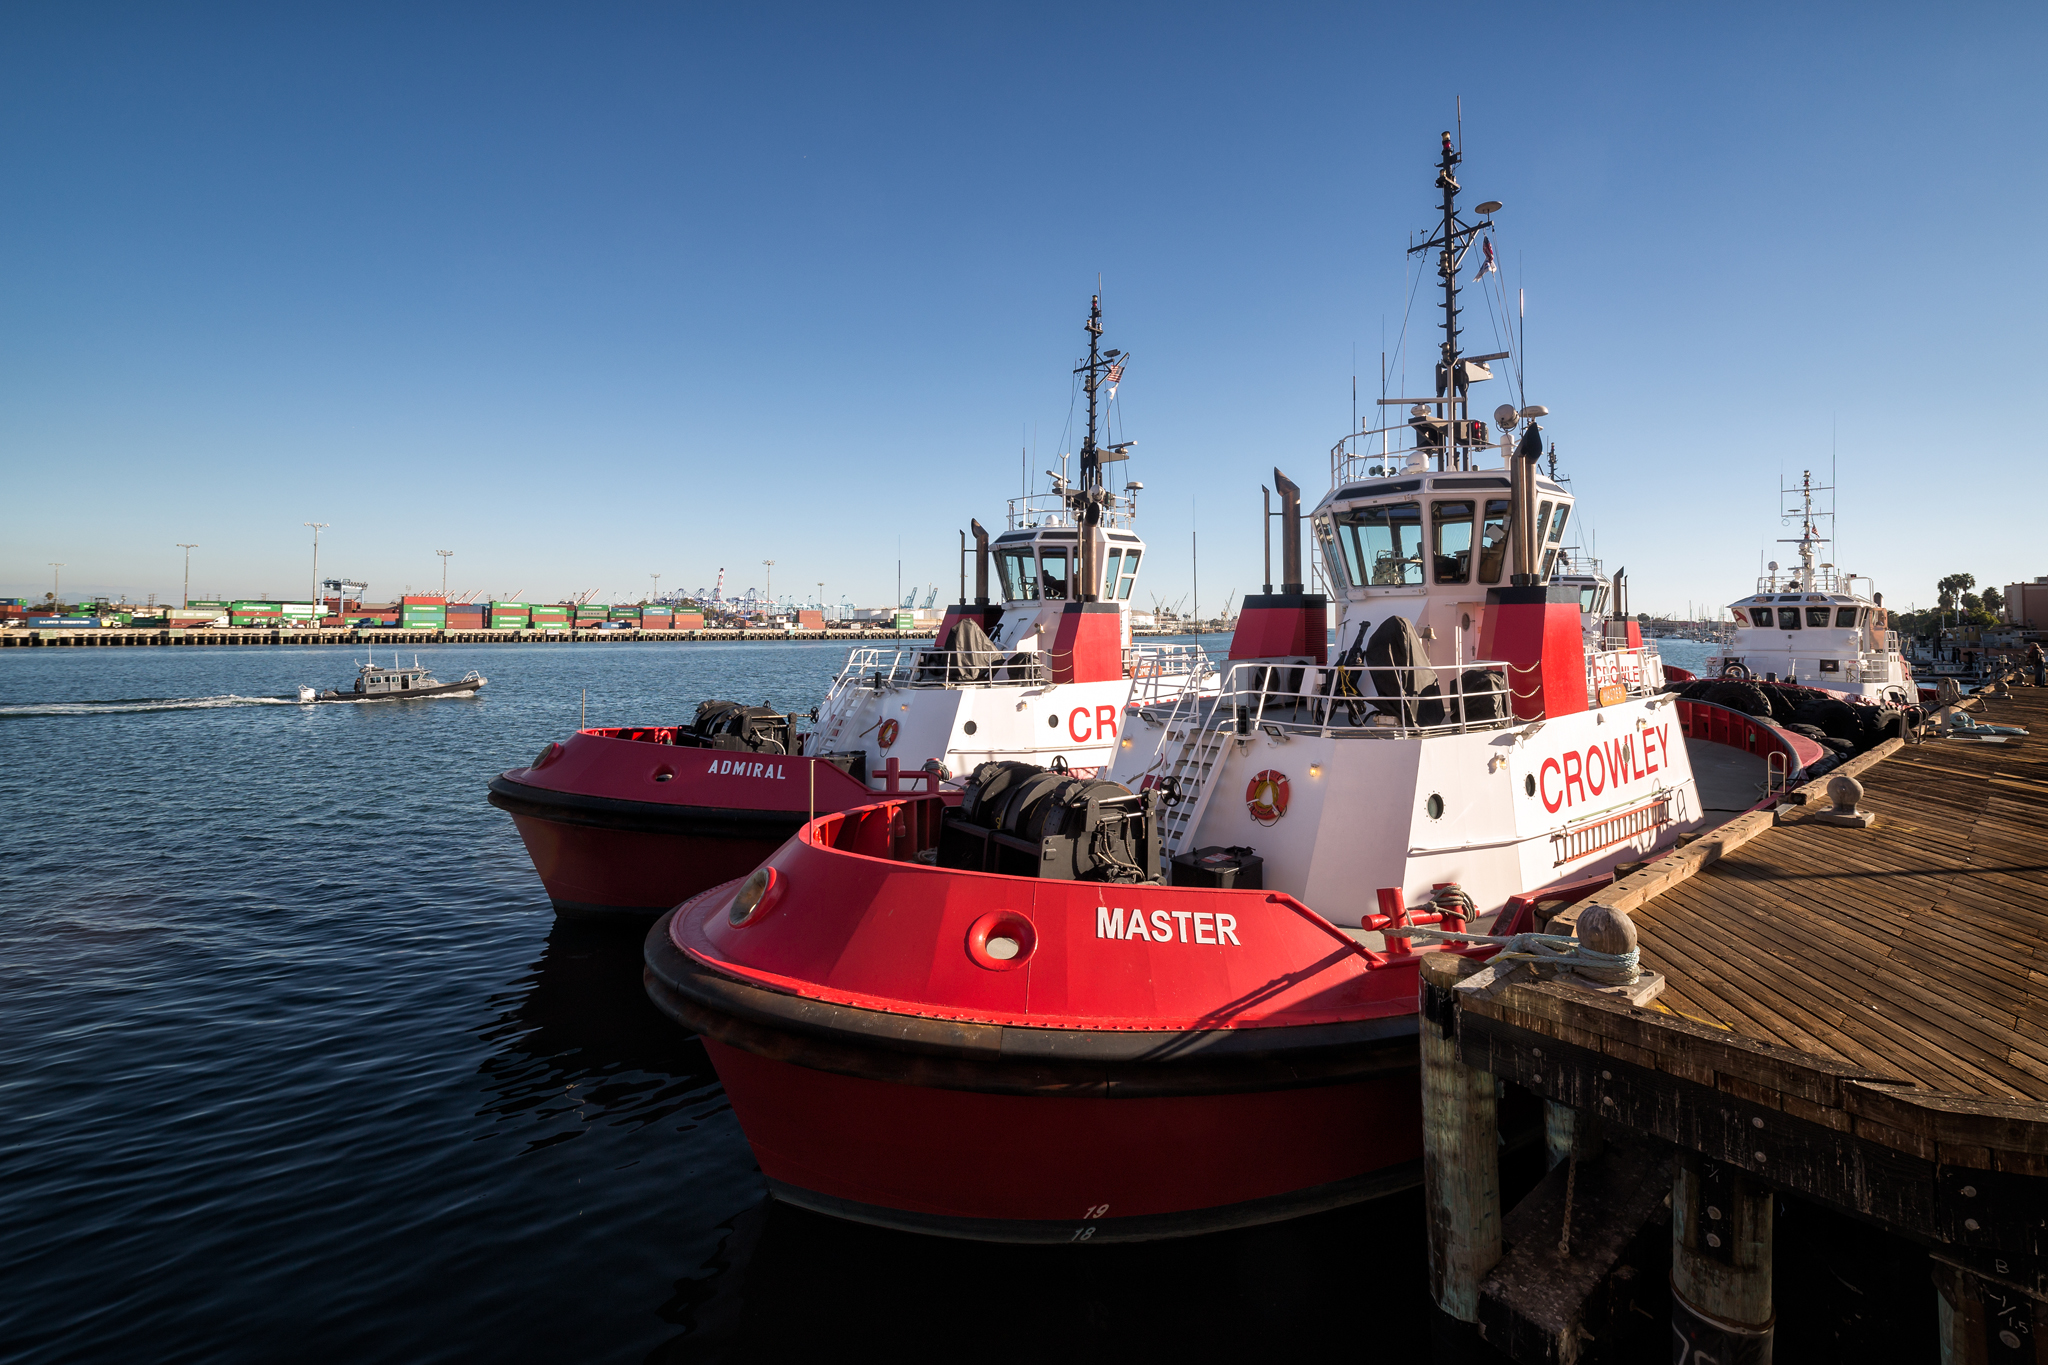 The fireboats Master and Admiral